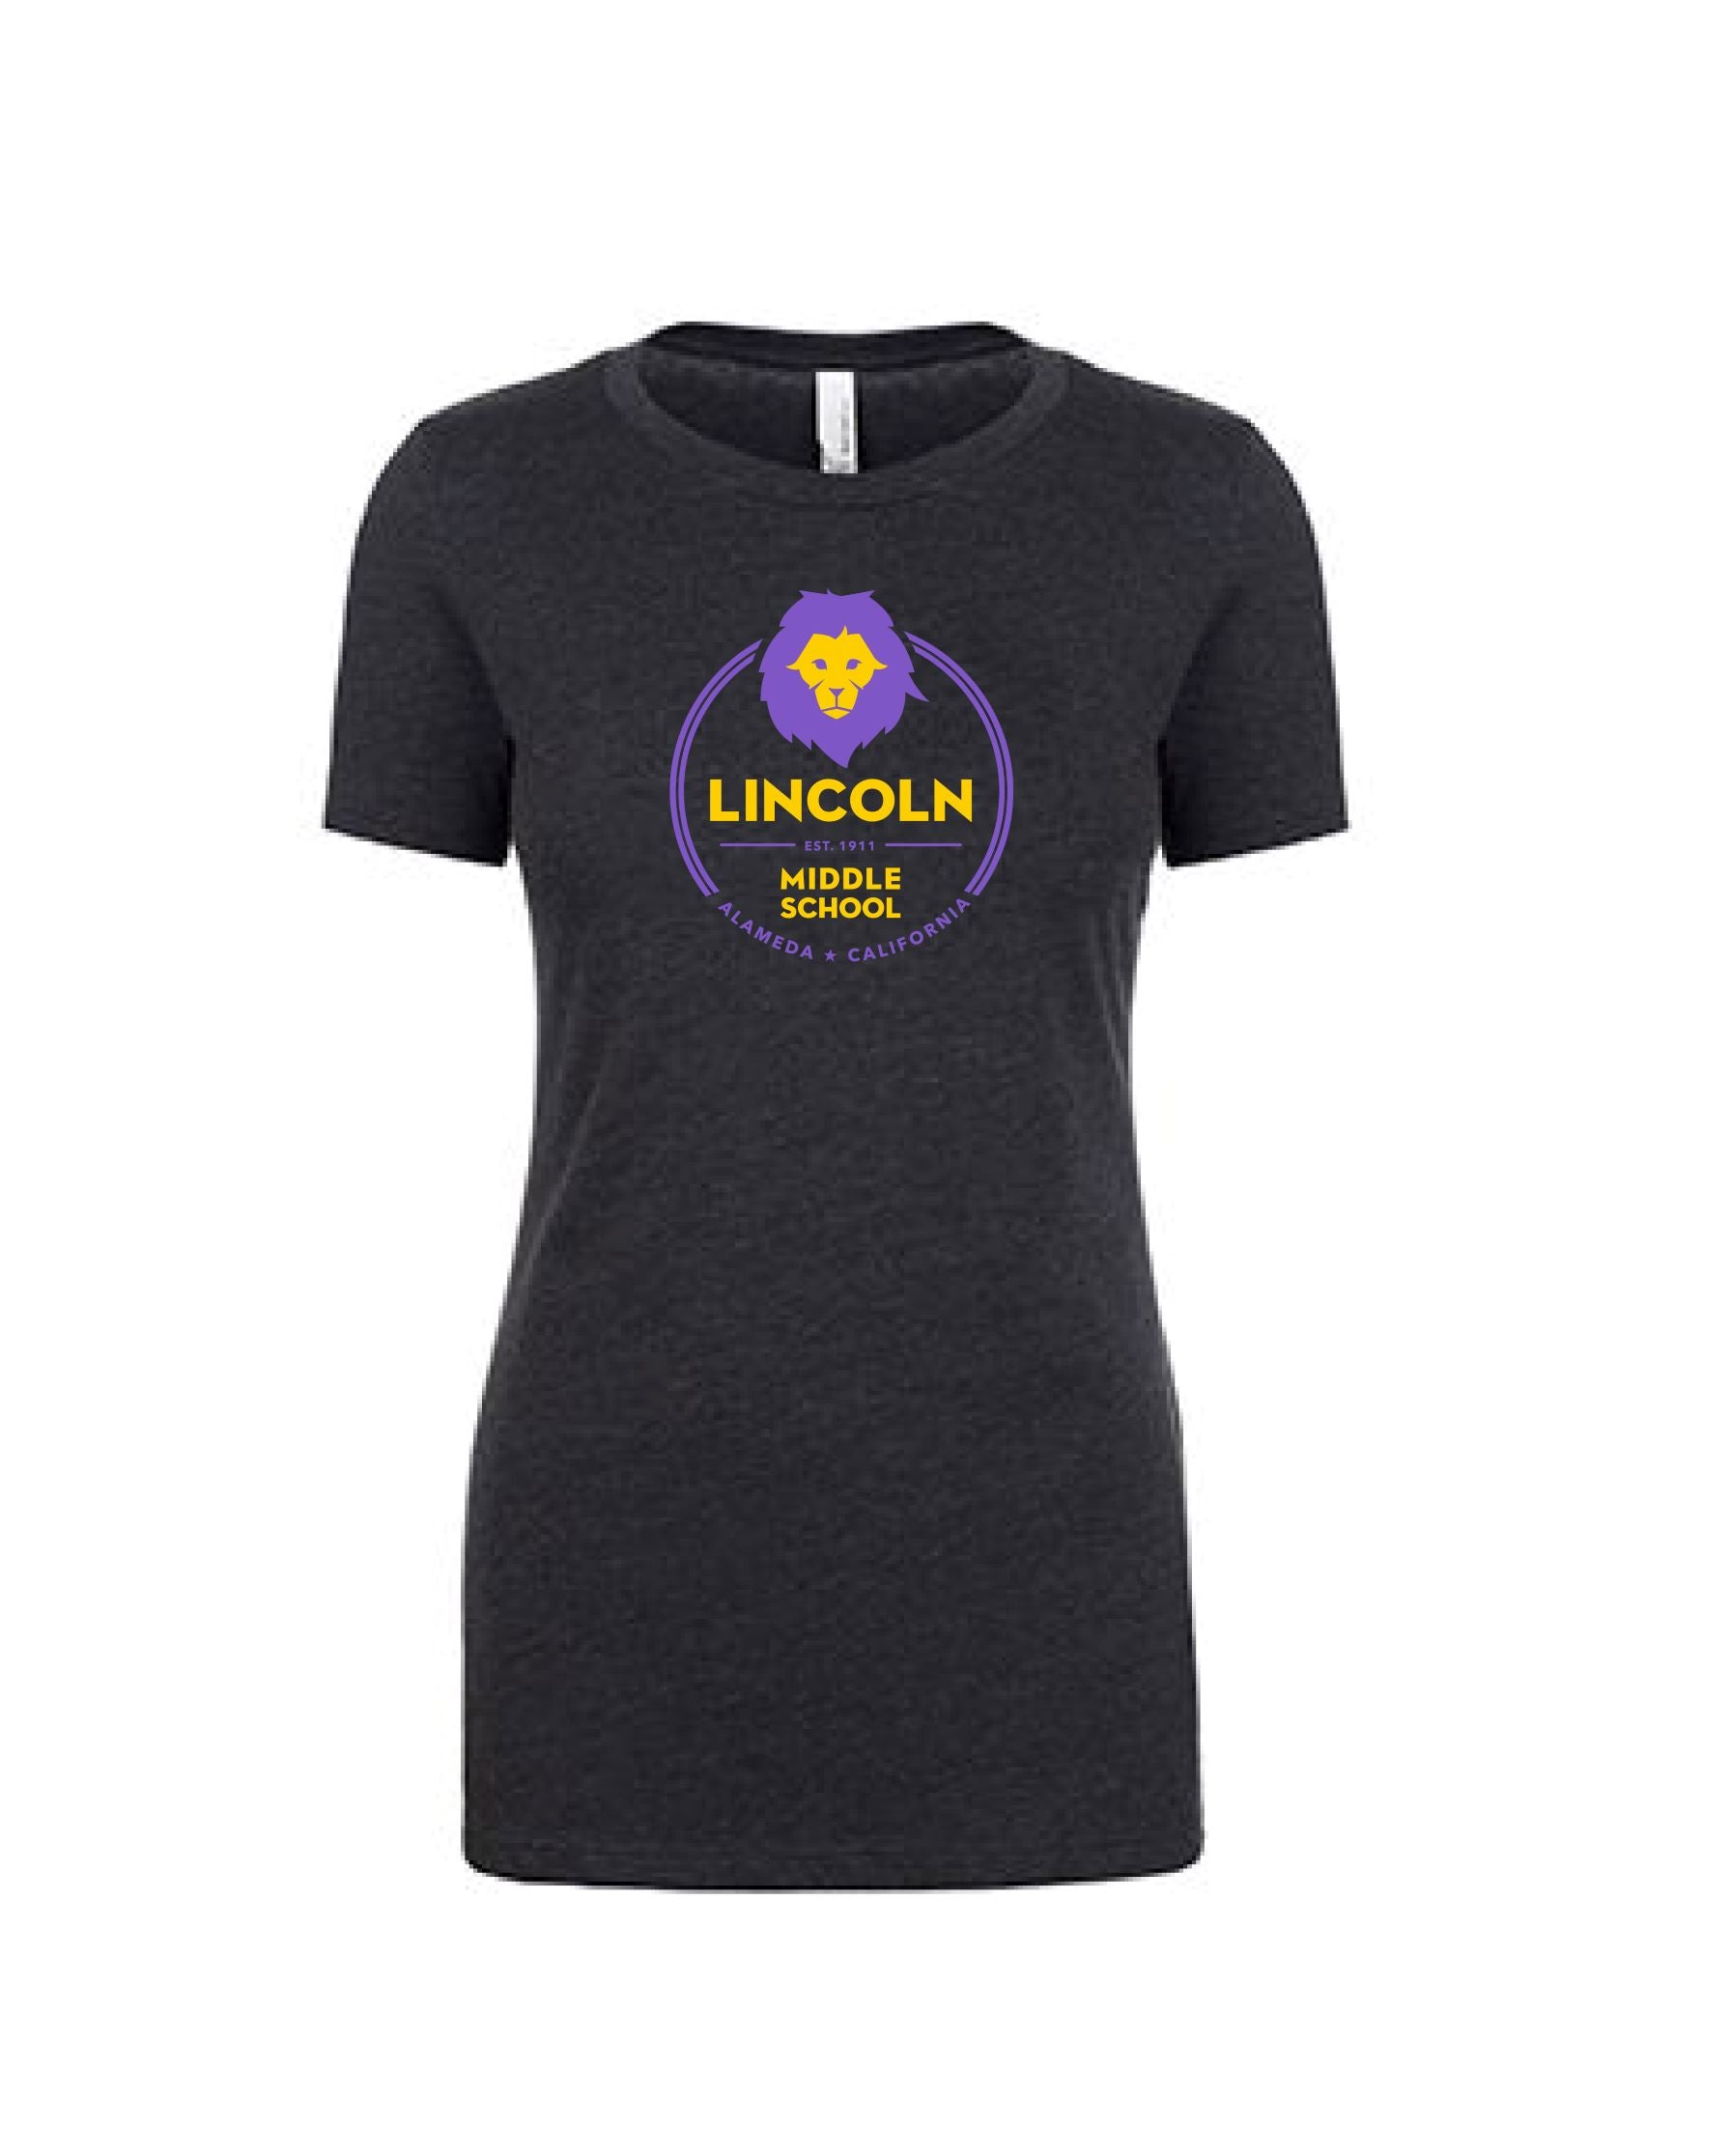 LINCOLN MIDDLE SCHOOL LADIES T-SHIRTS 2018/2019